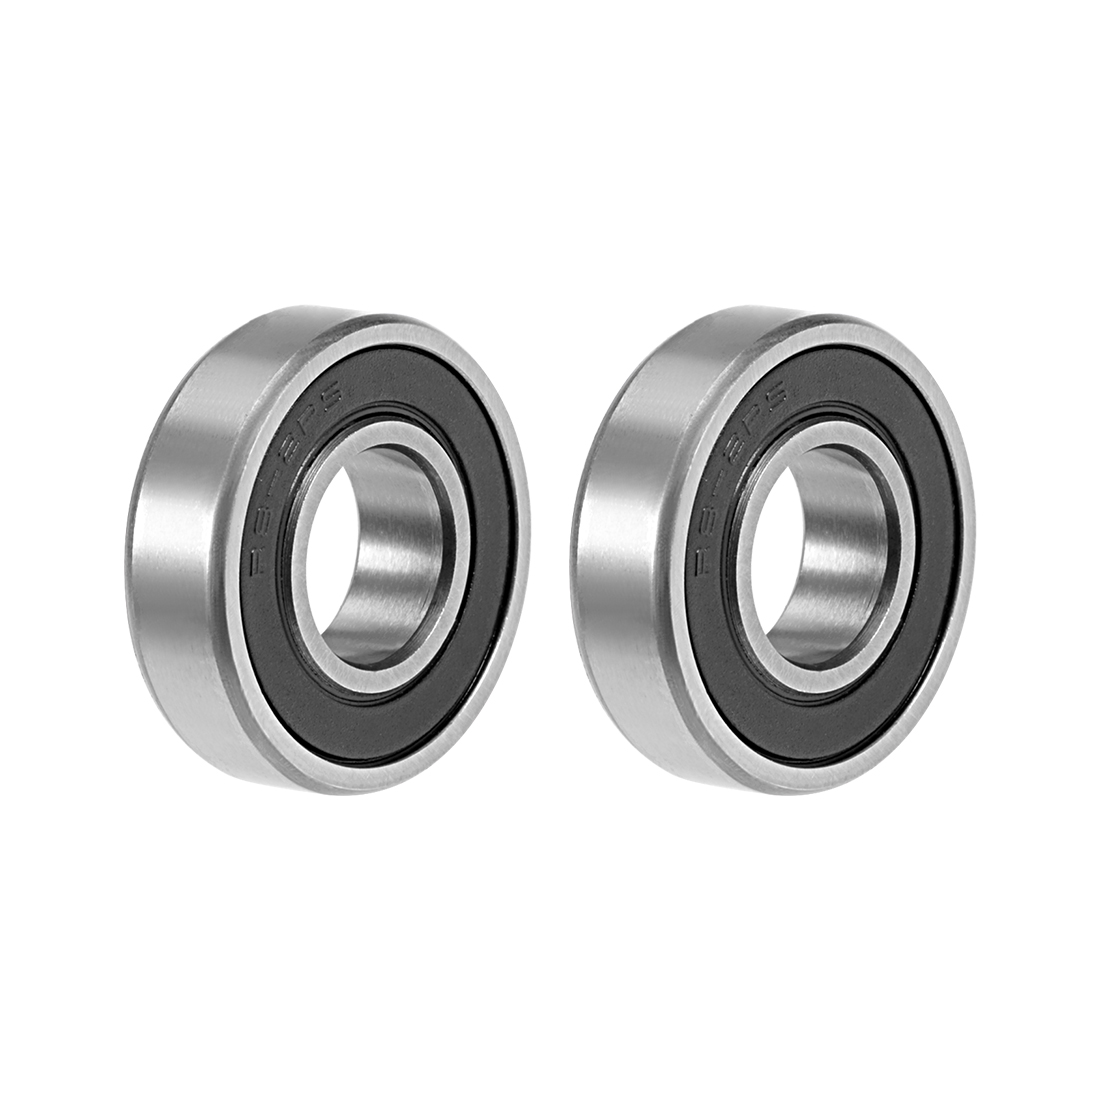 Uxcell R8-2RS Deep Groove Ball Bearing 1/2